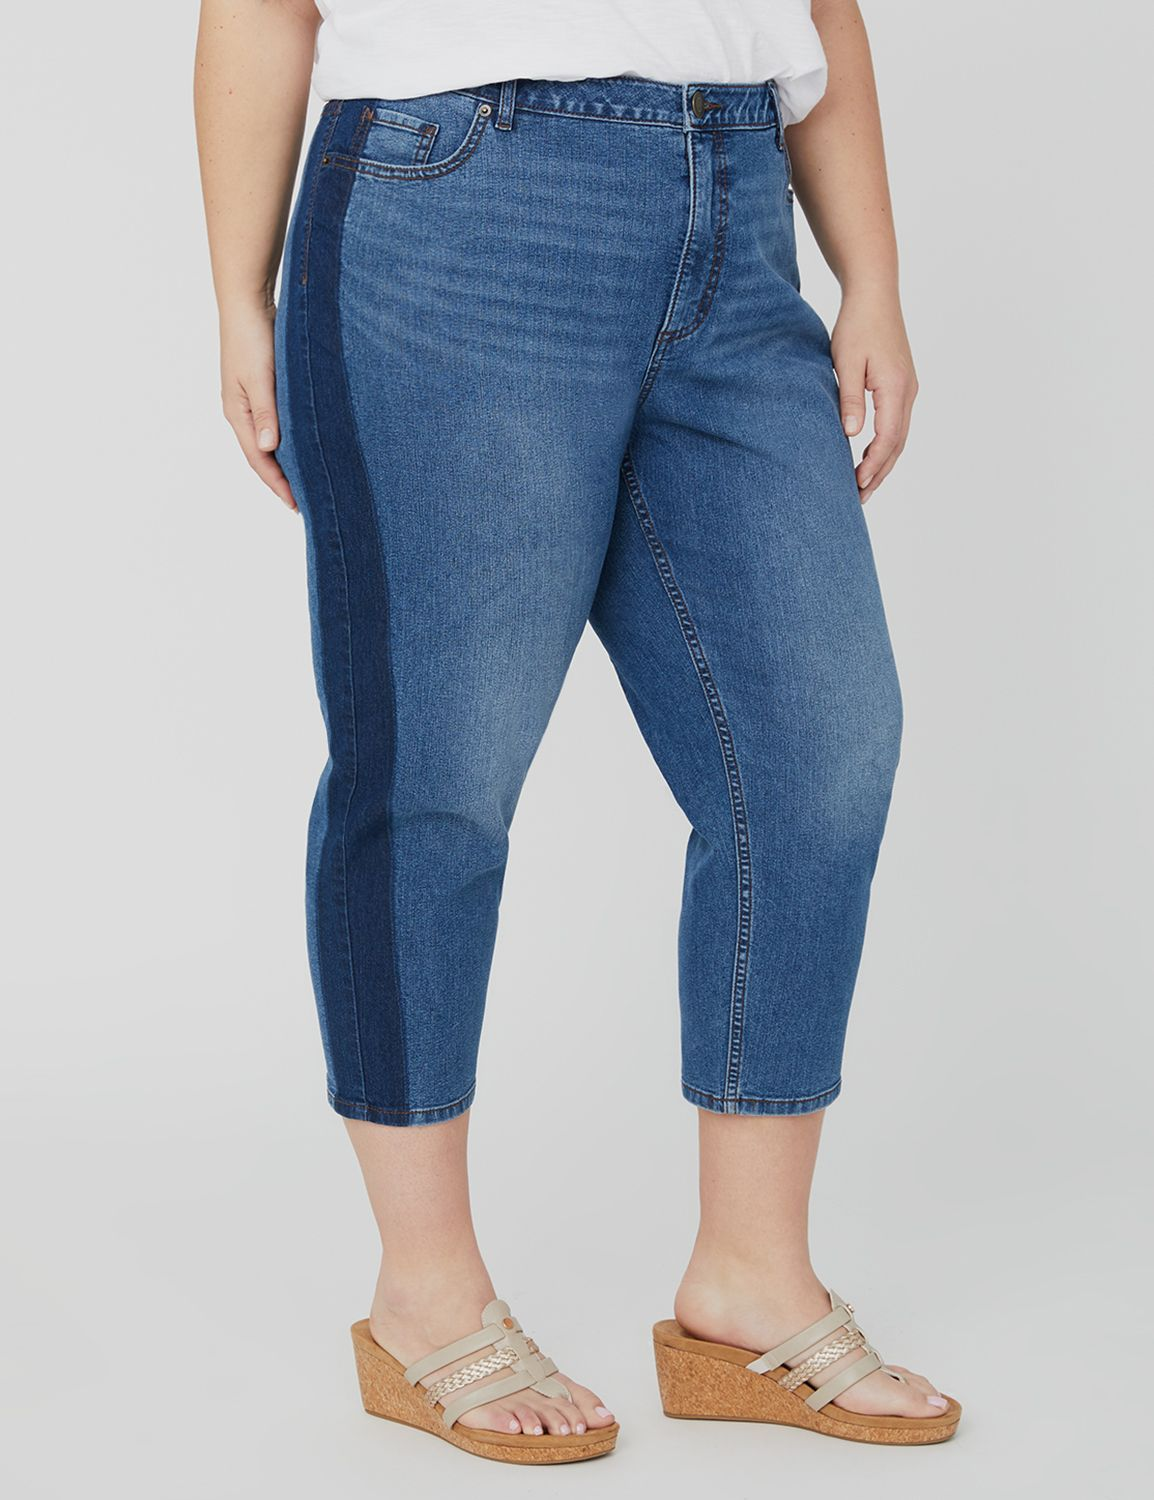 Jean Capri with Dark-Wash Stripe 1088046 2-TONE DENIM WASH ON SIDE S MP-300099605